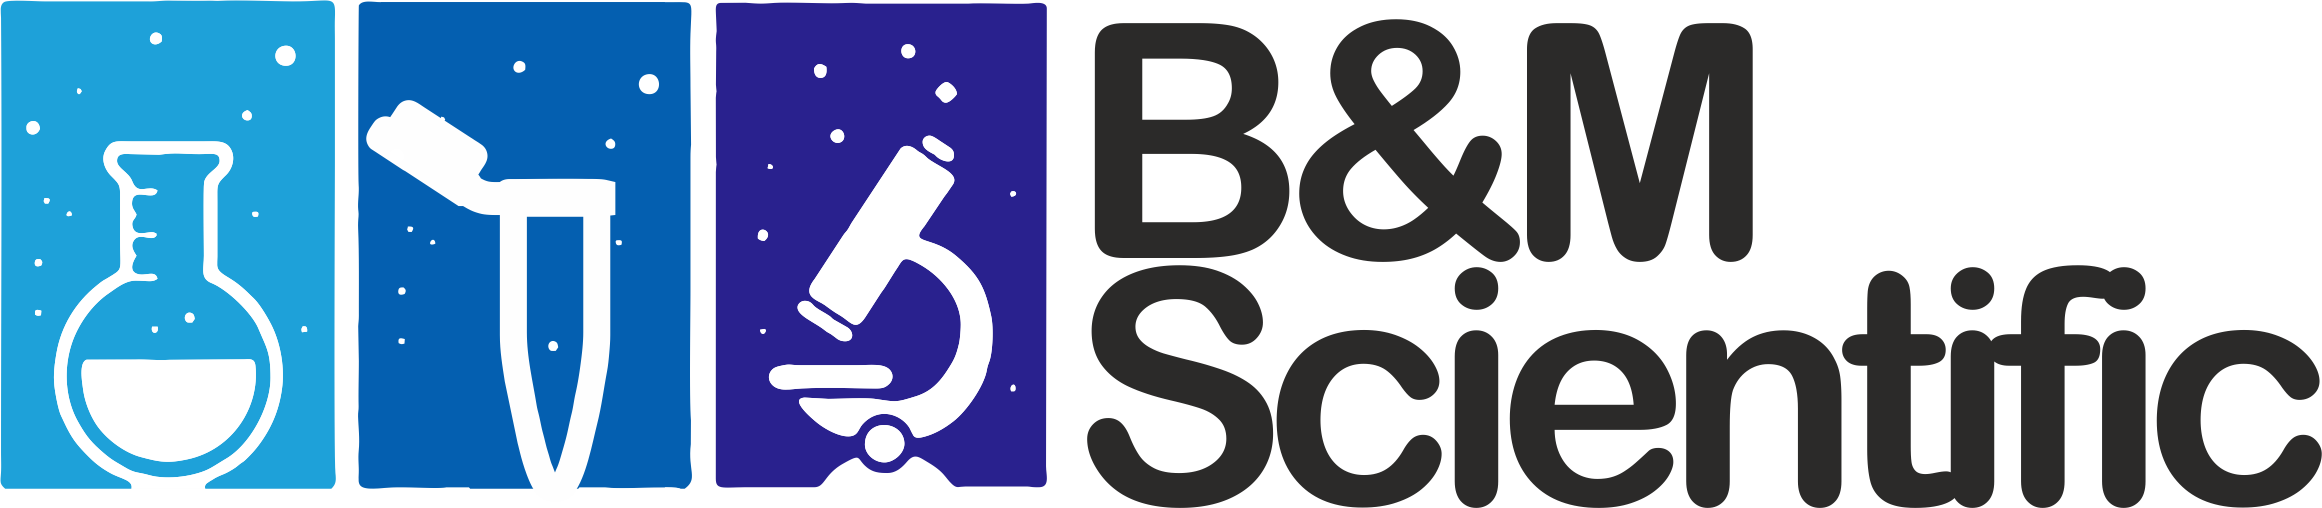 B&M Scientific